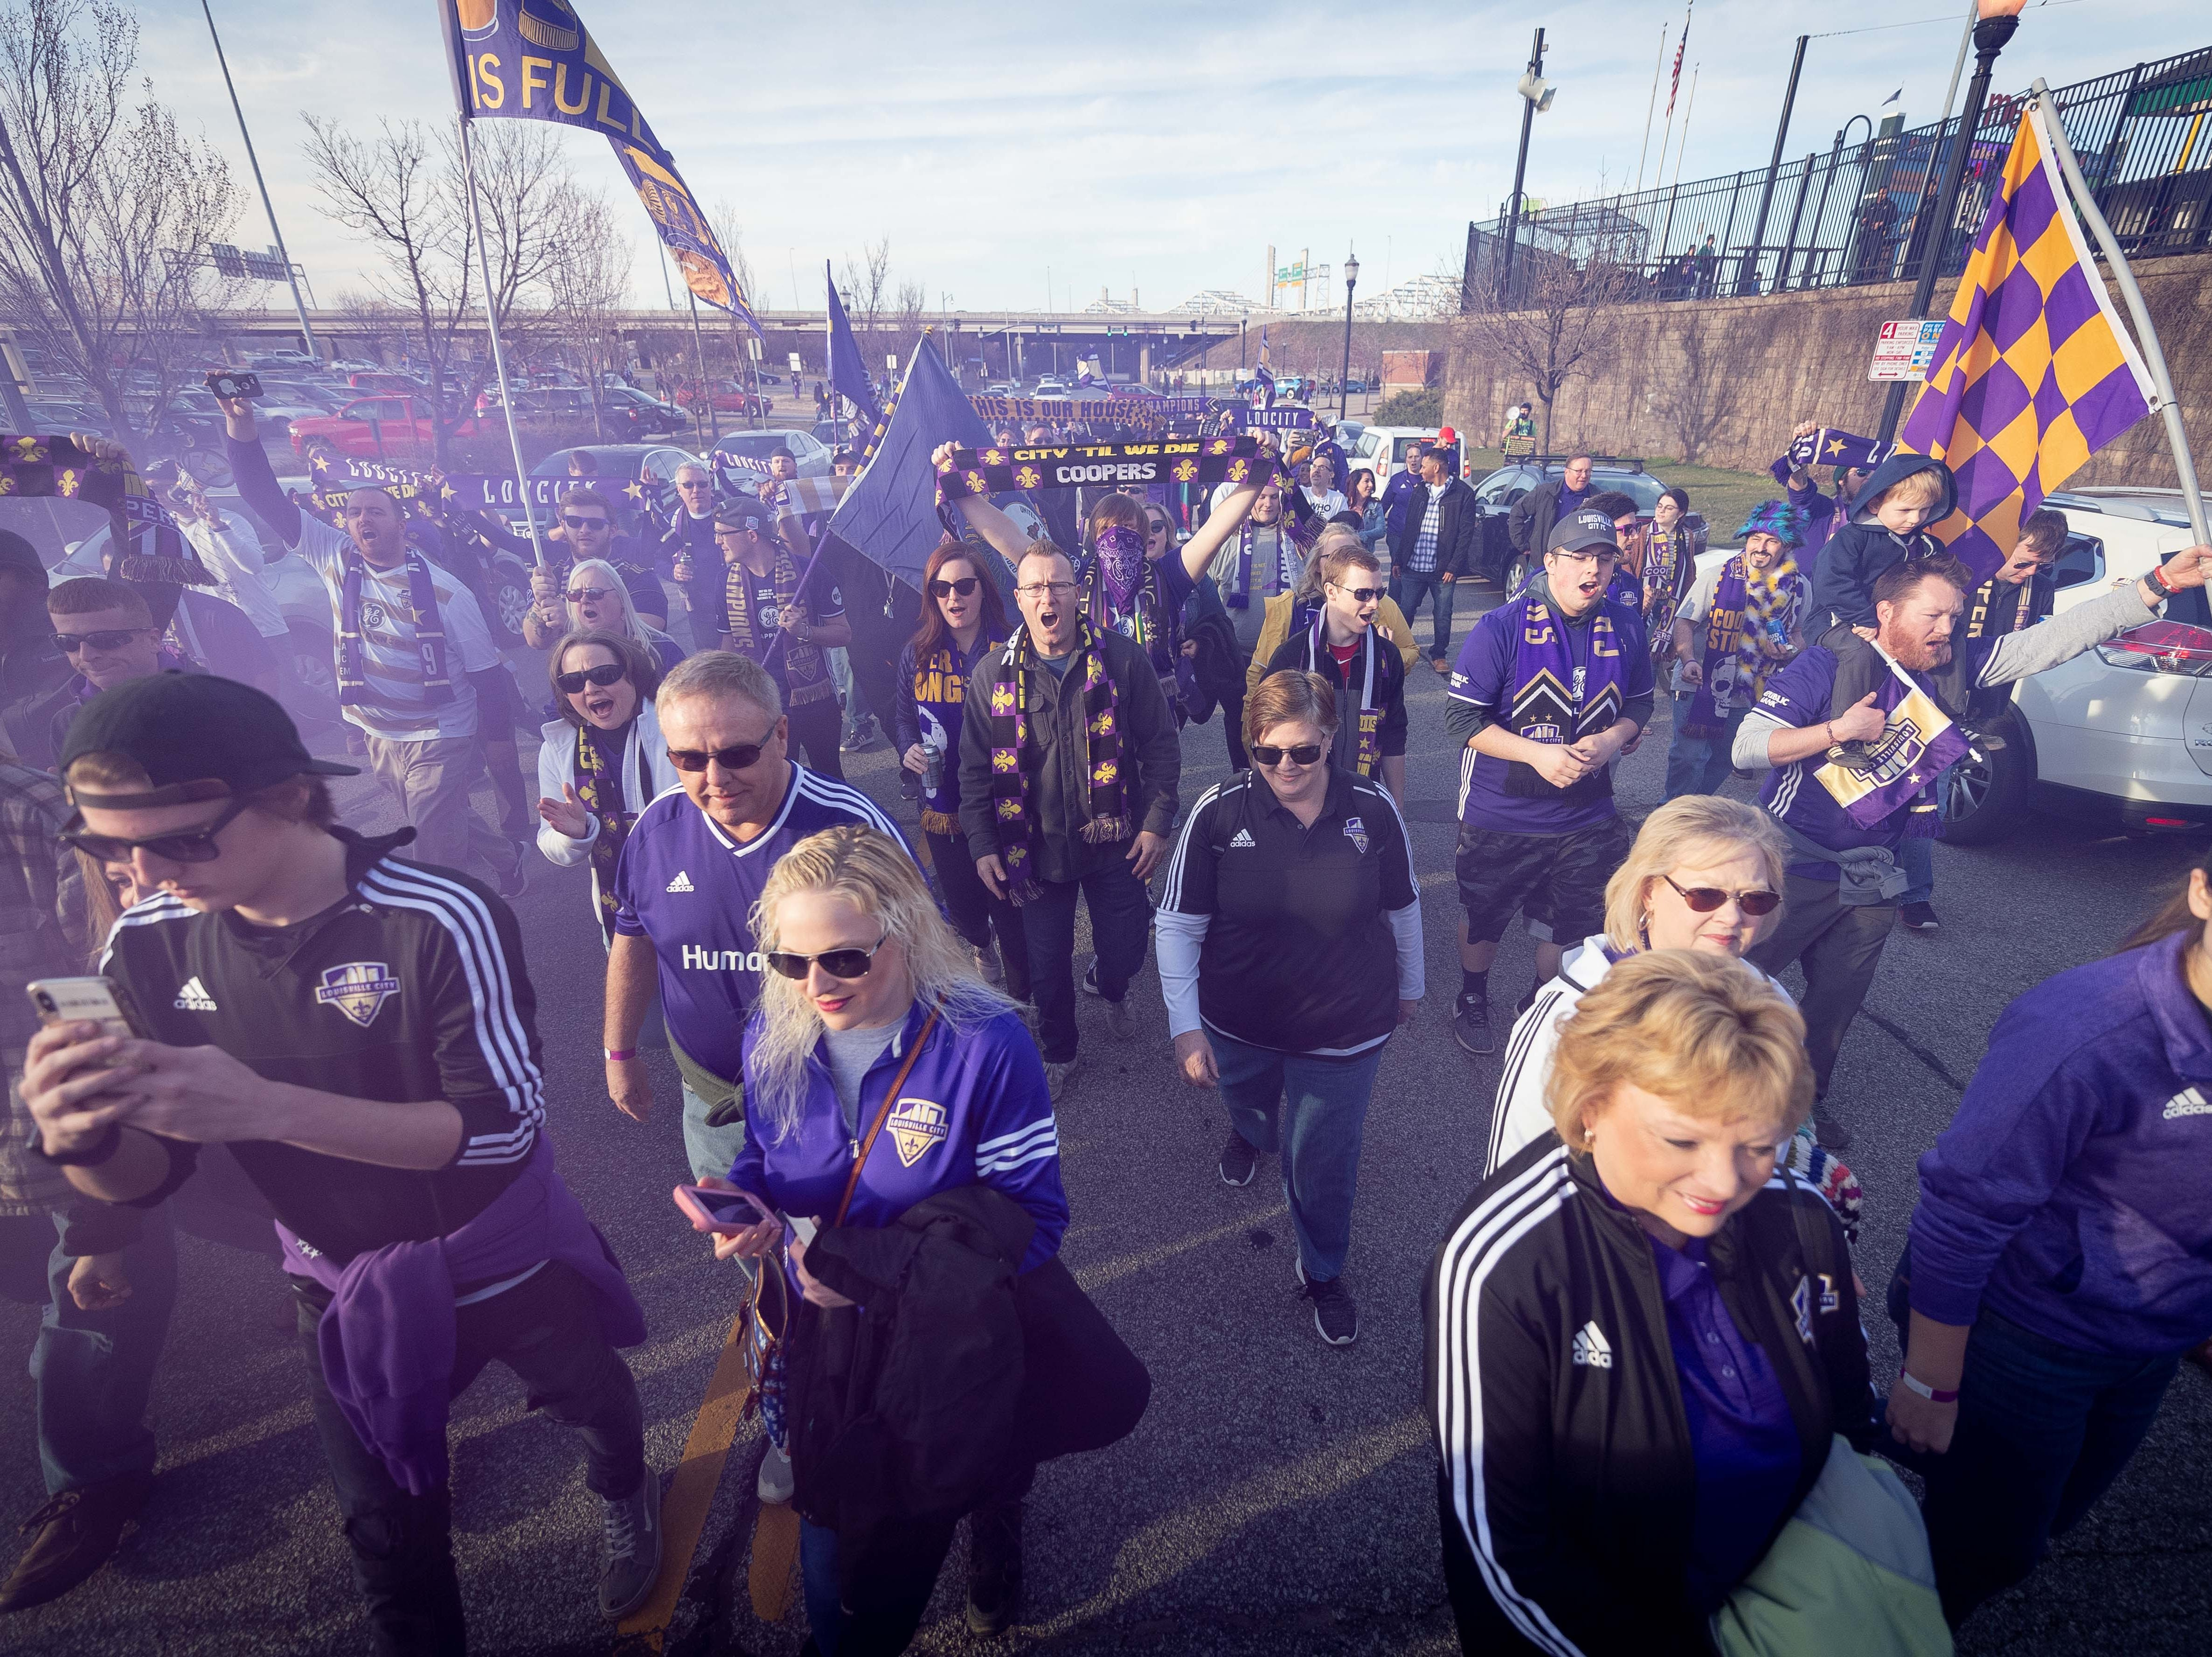 Louisville City FC fans march up Preston Street on their way to the match in Louisville, Ky., Saturday, March 23, 2019.